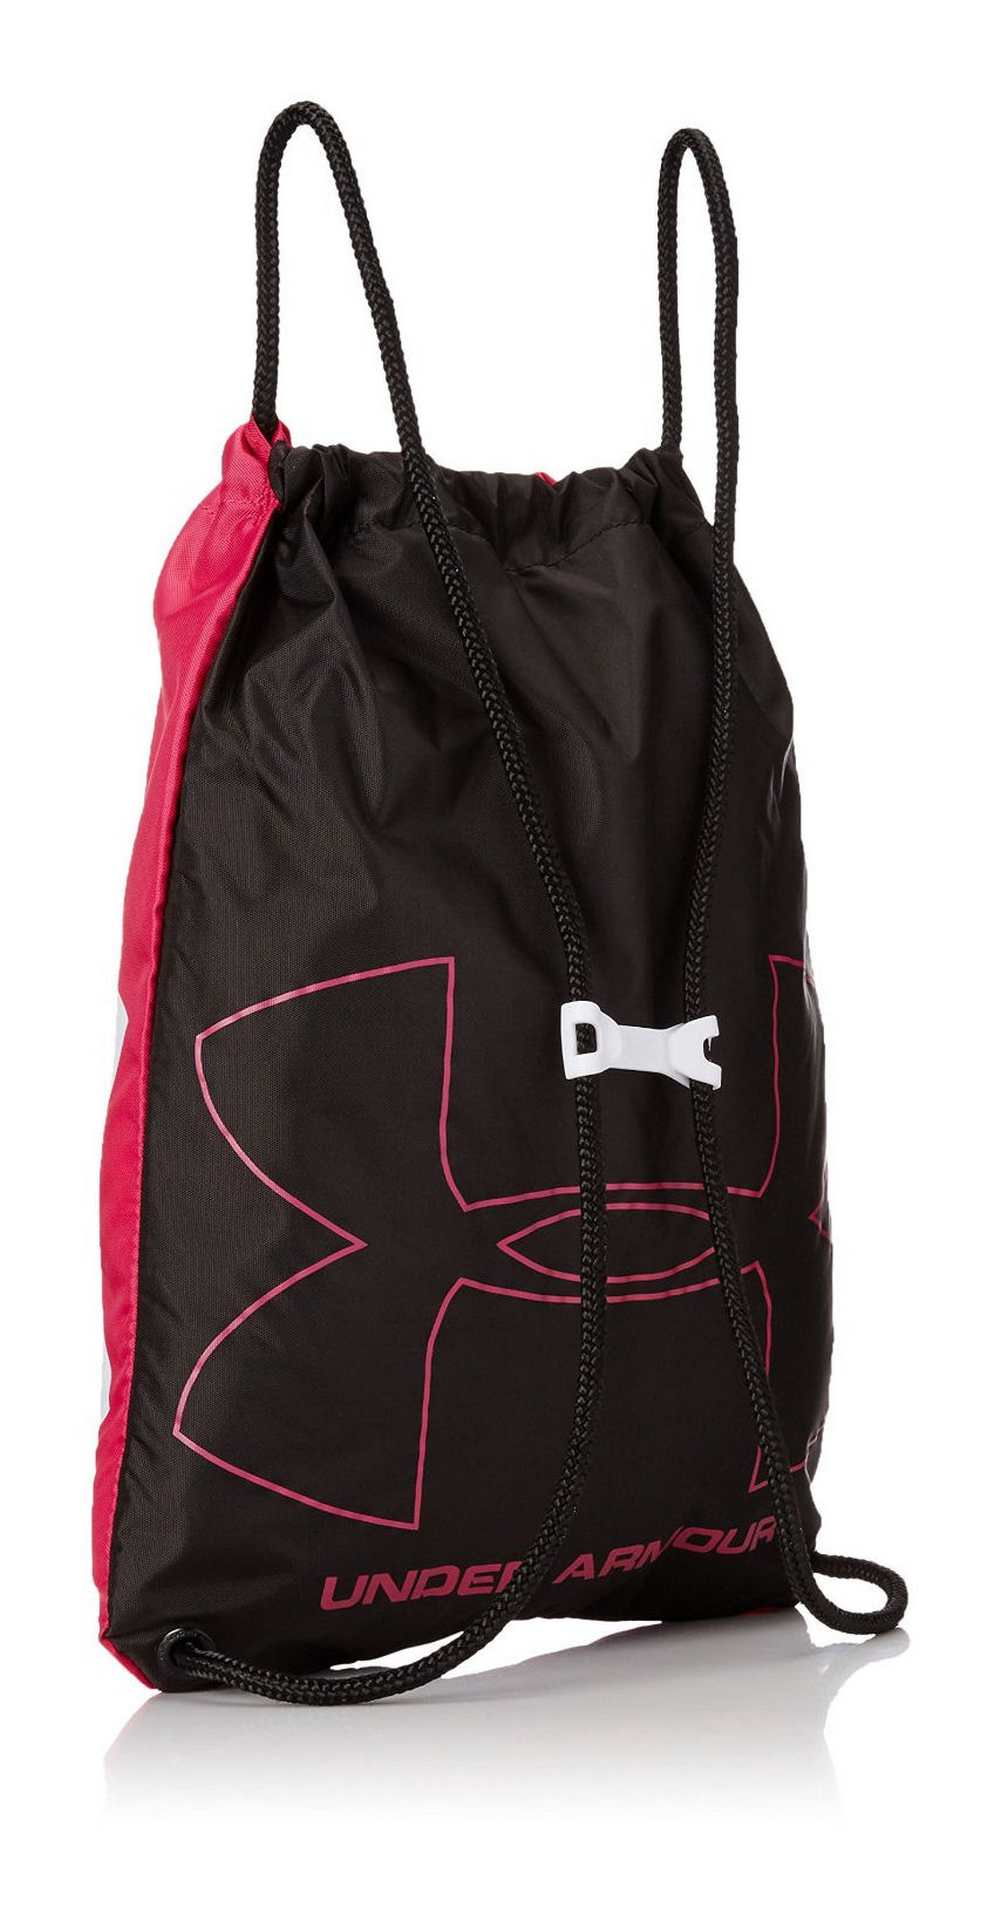 74a04216008f Under Armour - Ozsee Sackpack Drawstring All Sport Backpack 1240539 -  Walmart.com